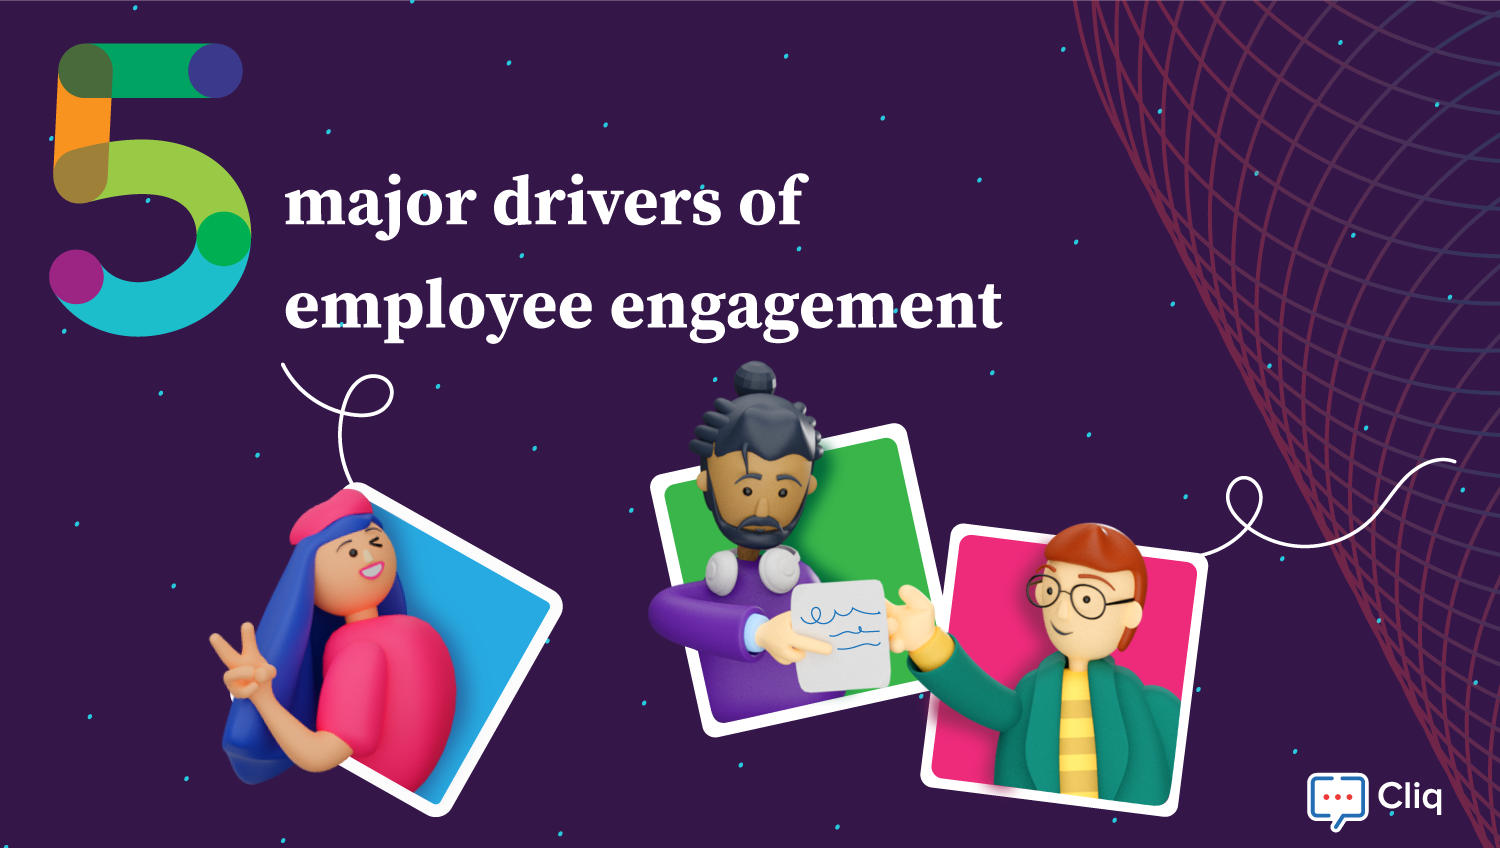 5 major drivers of employee engagement